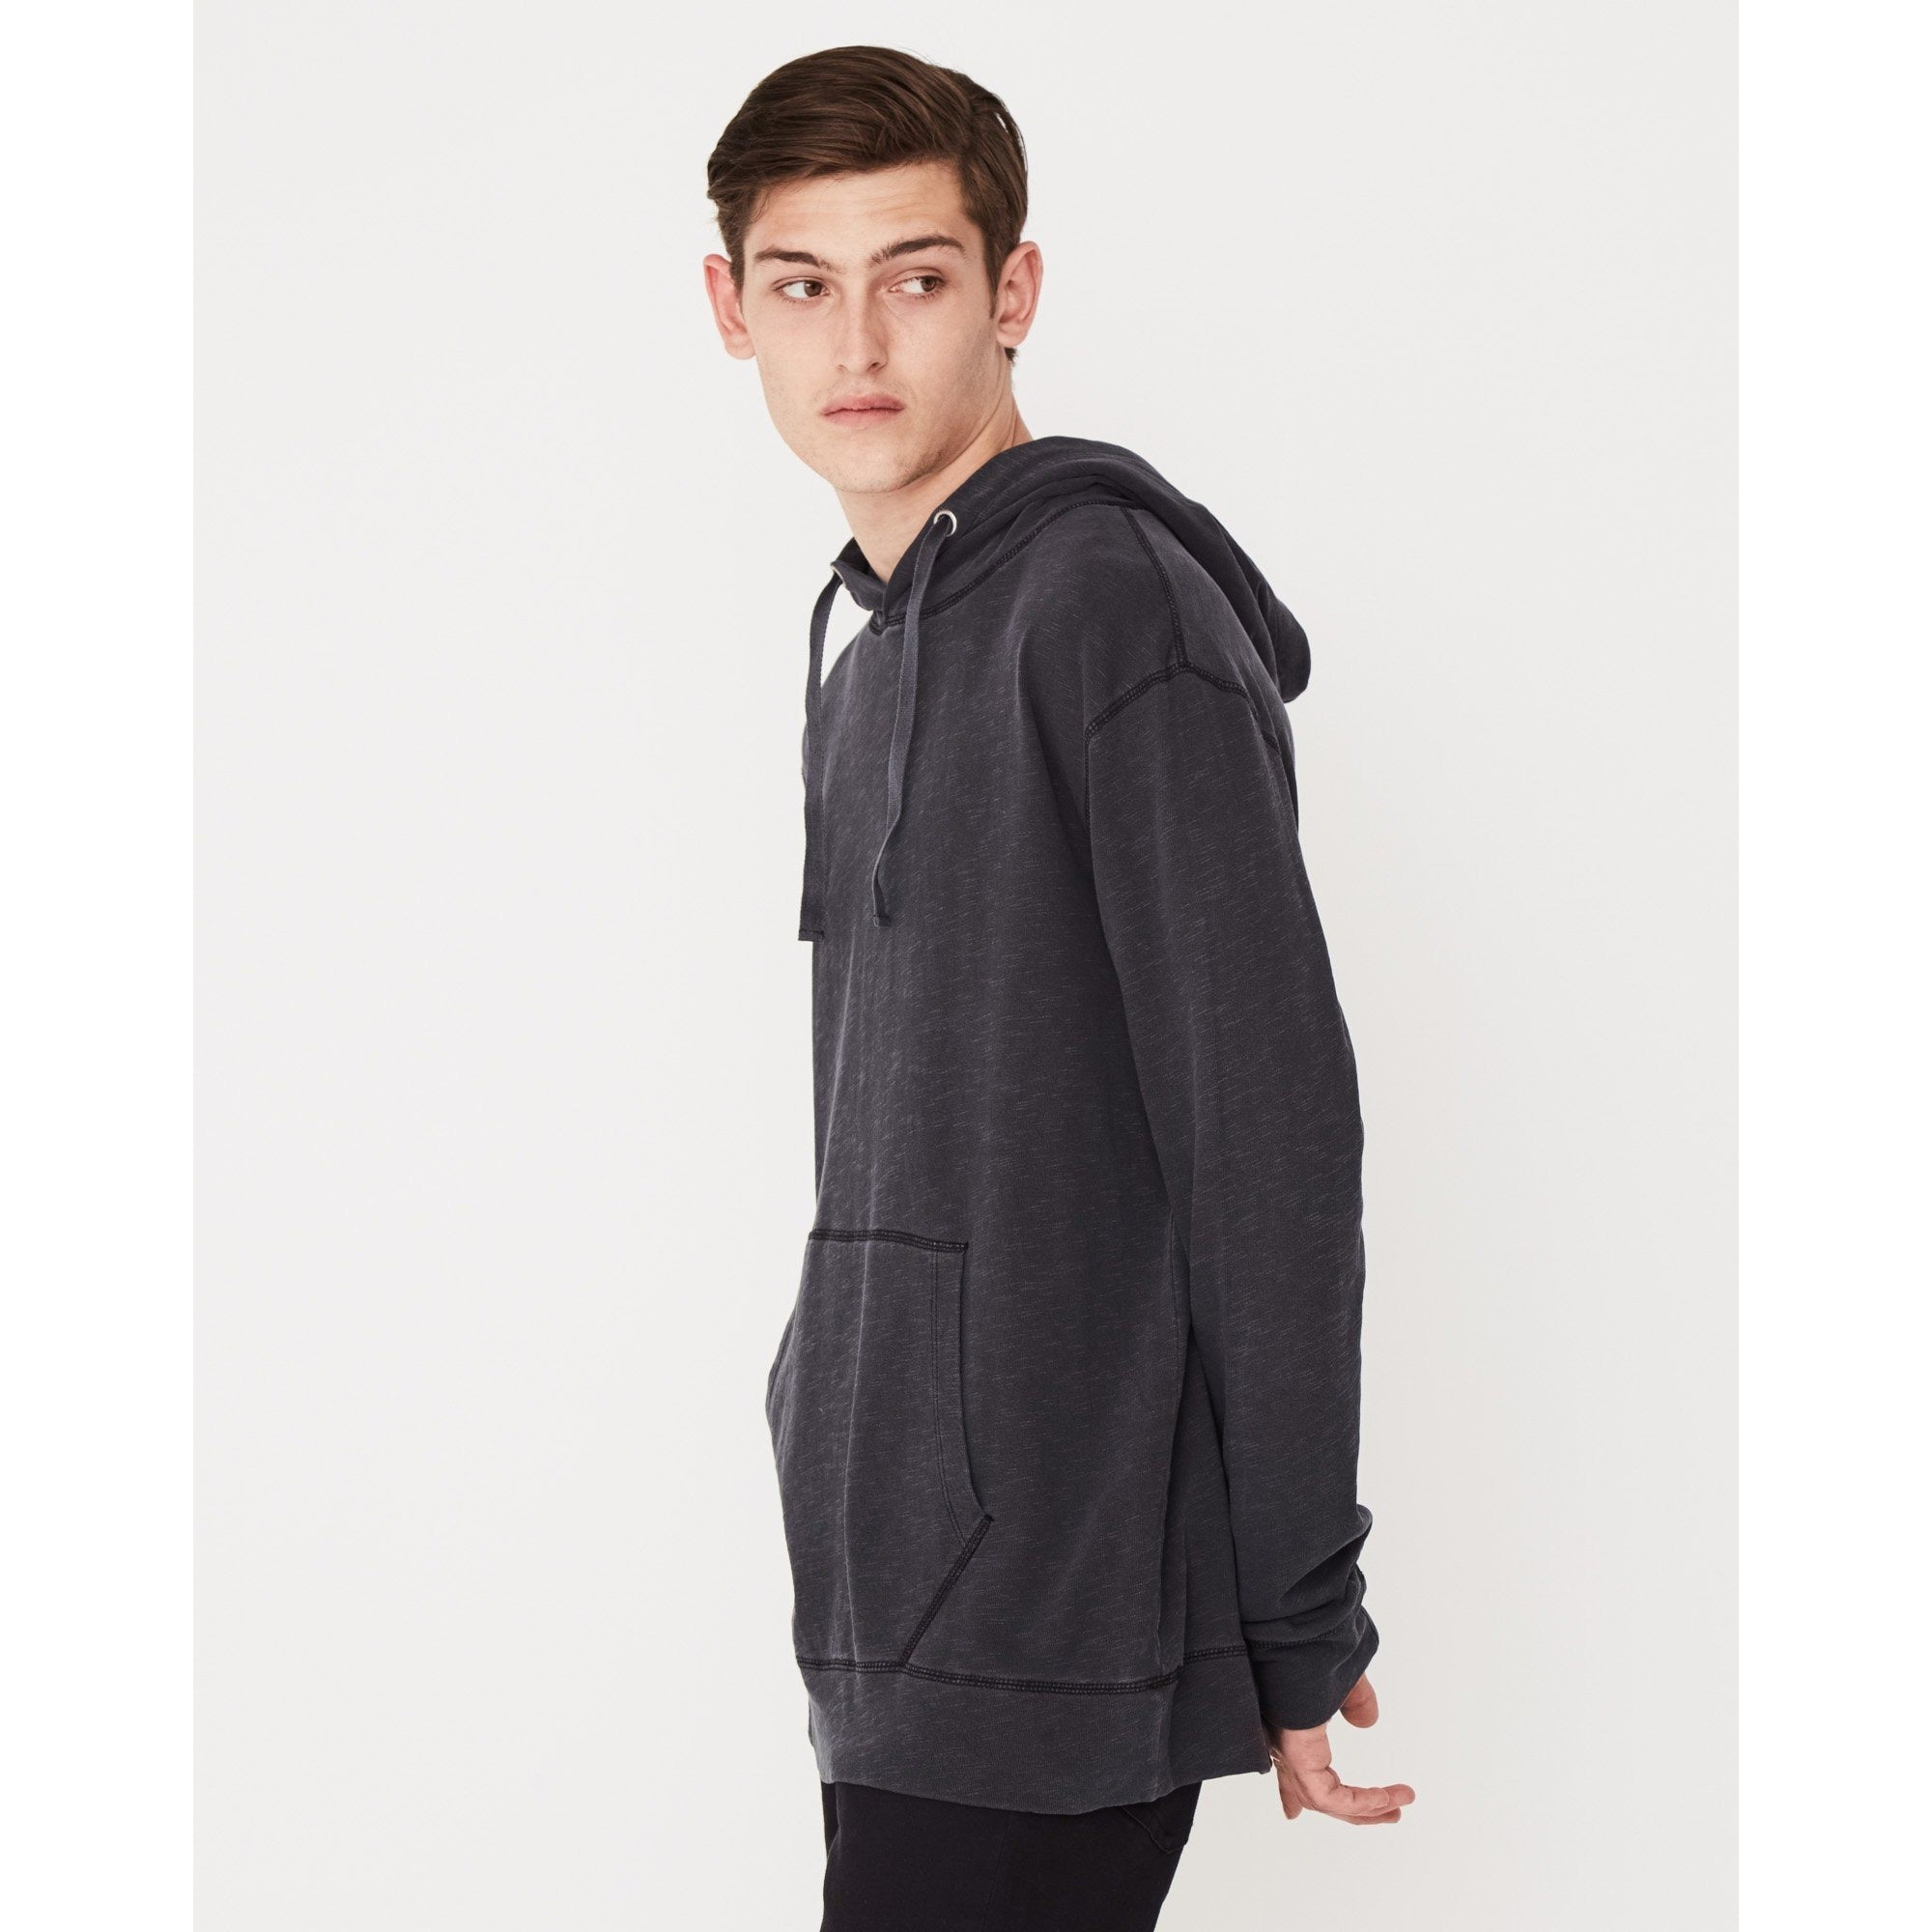 Assembly Label- foundation hooded fleece black